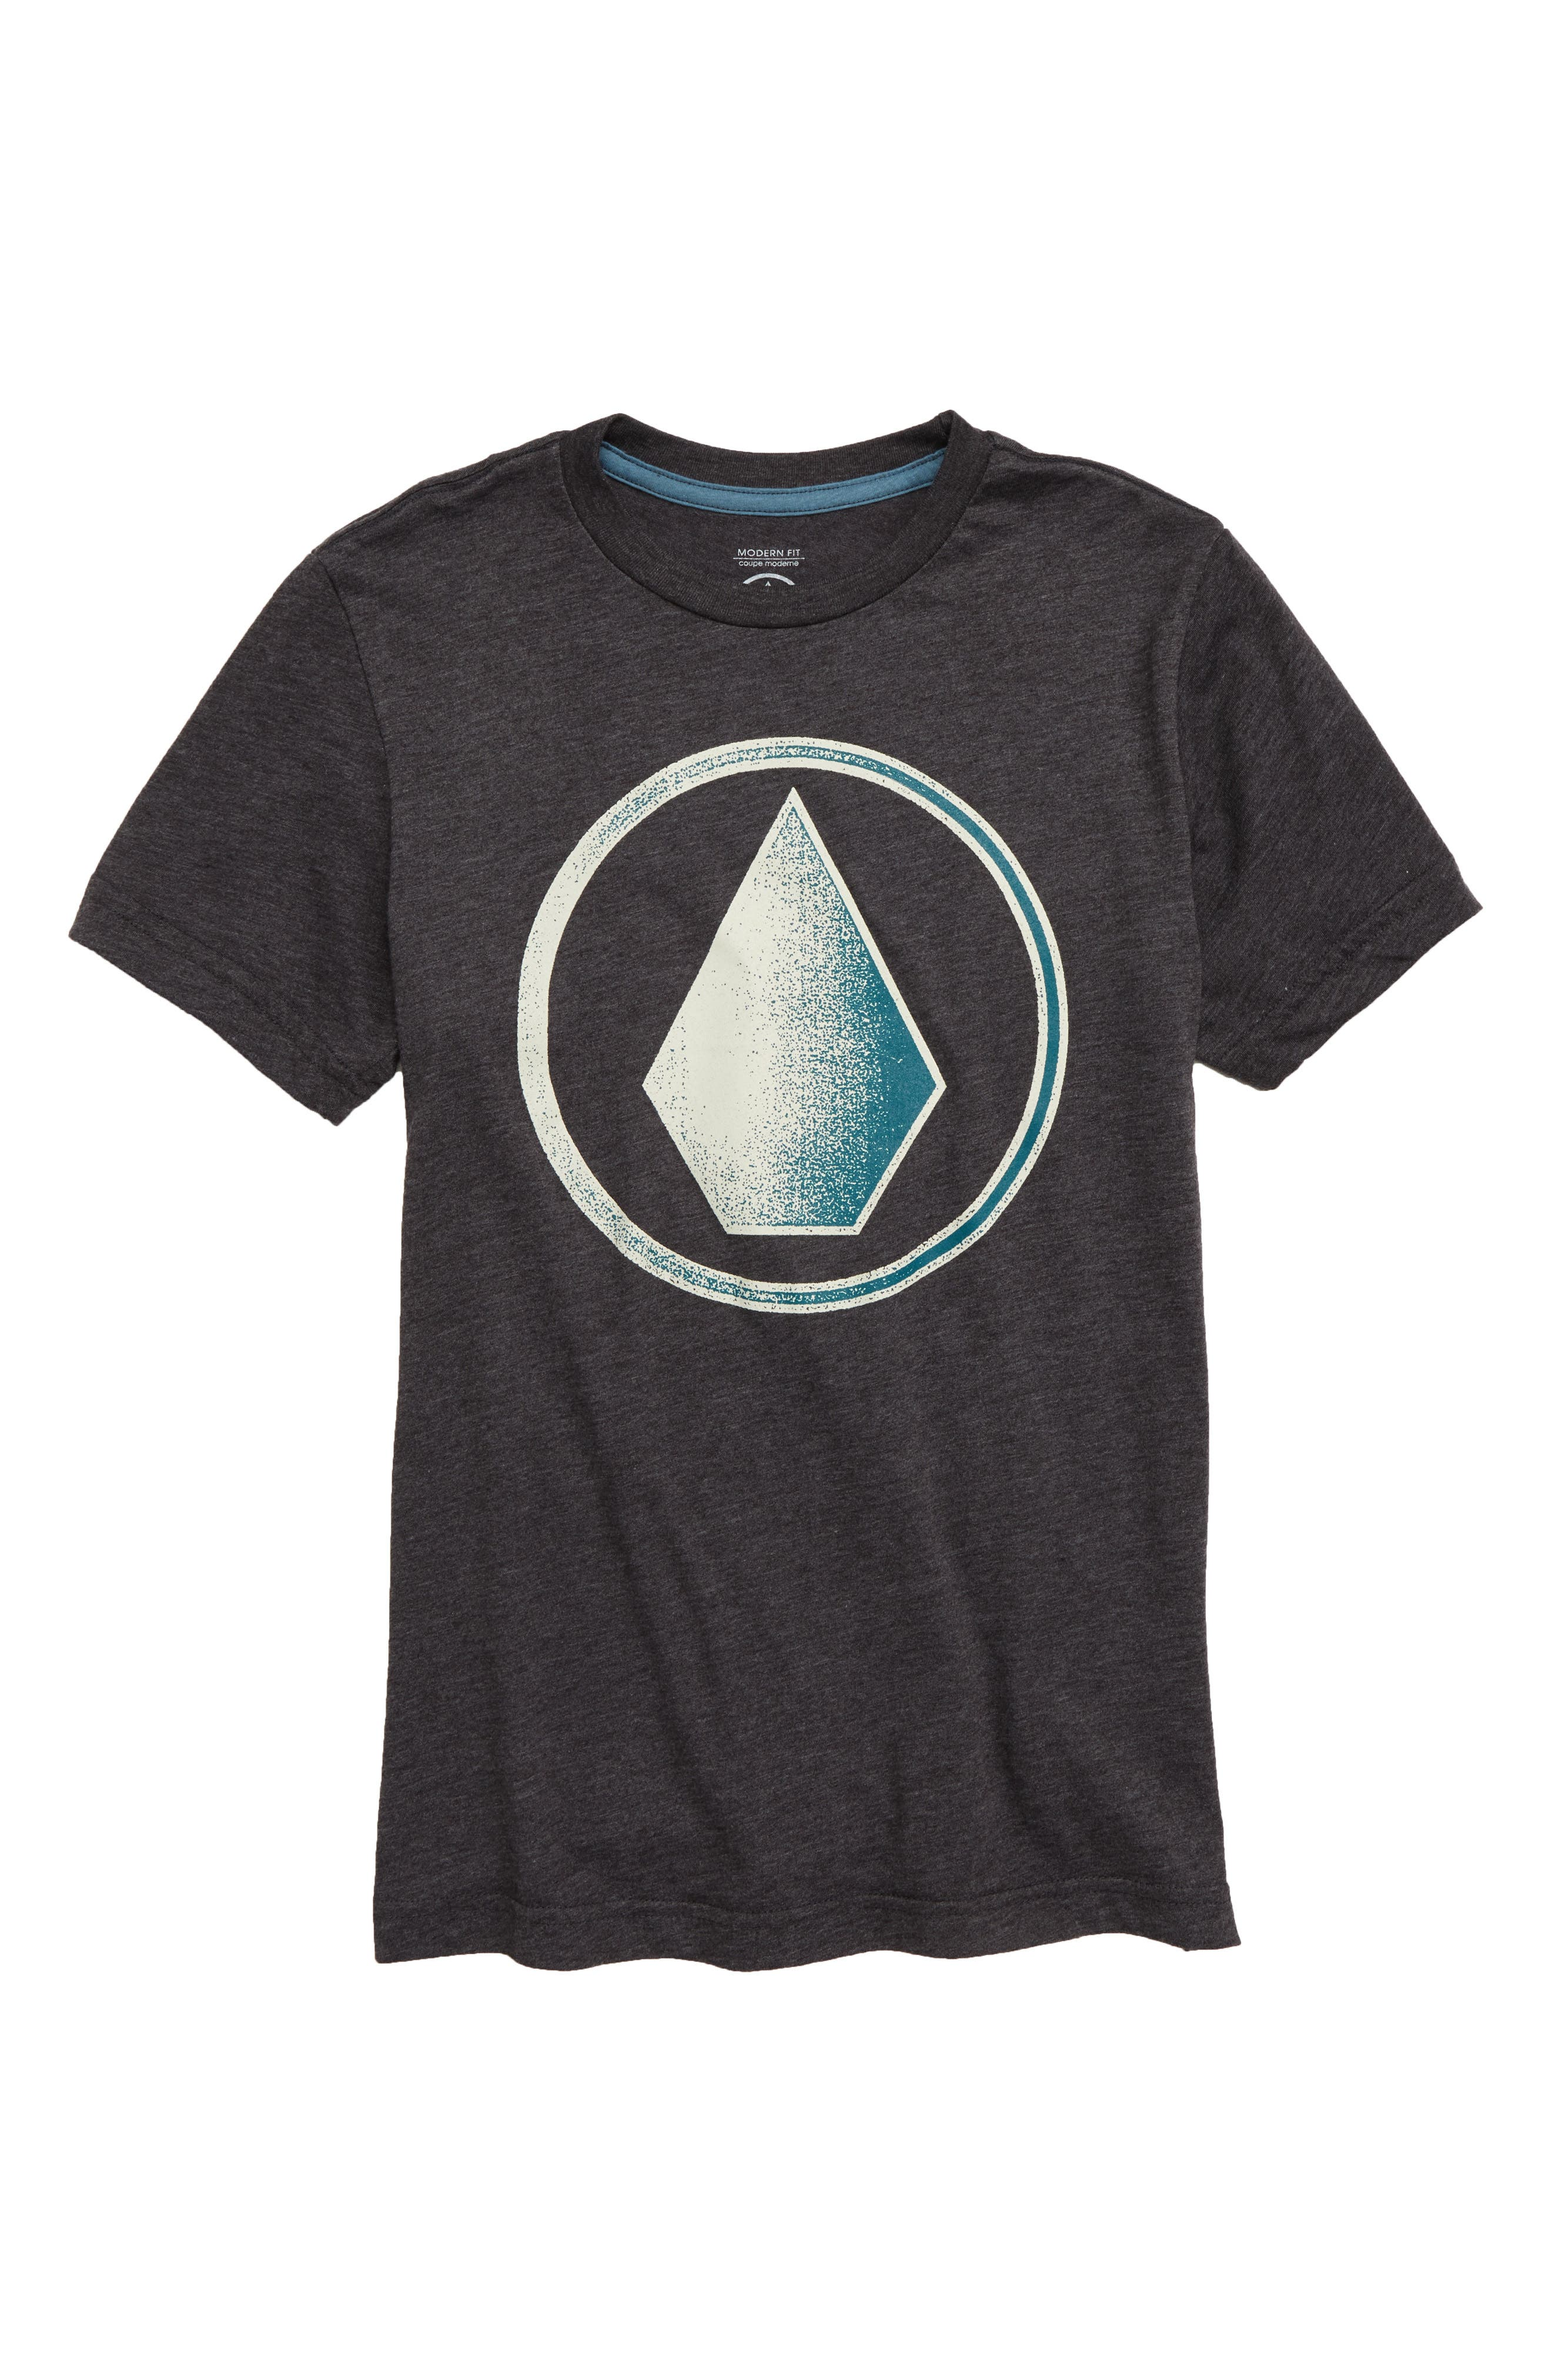 Removed Graphic T-Shirt,                             Main thumbnail 1, color,                             HEATHER BLUE